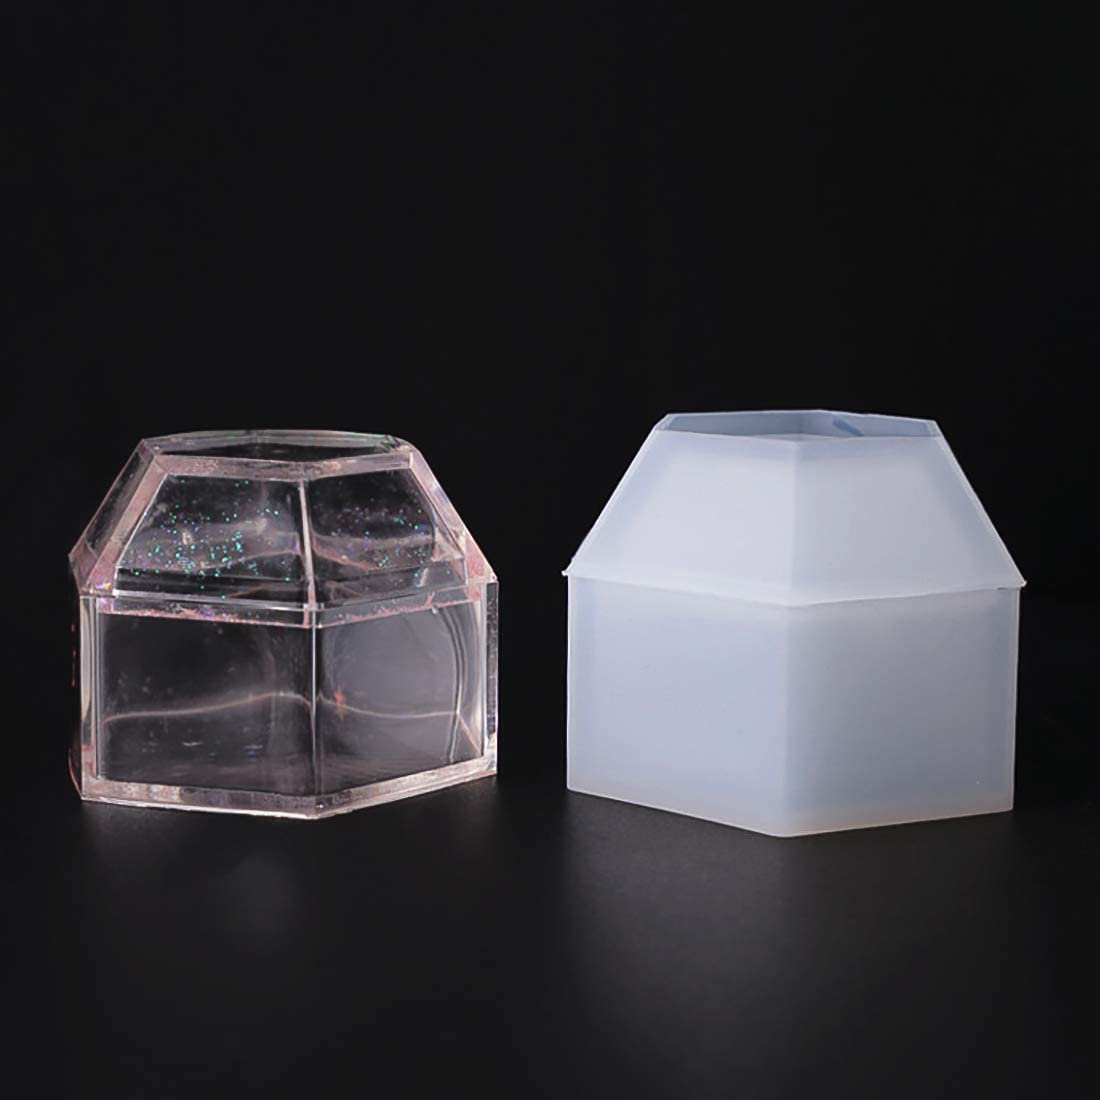 FineInno Box Resin Molds Jewelry Hexagon New products, world's highest quality popular! Silicone Price reduction Mold Stora